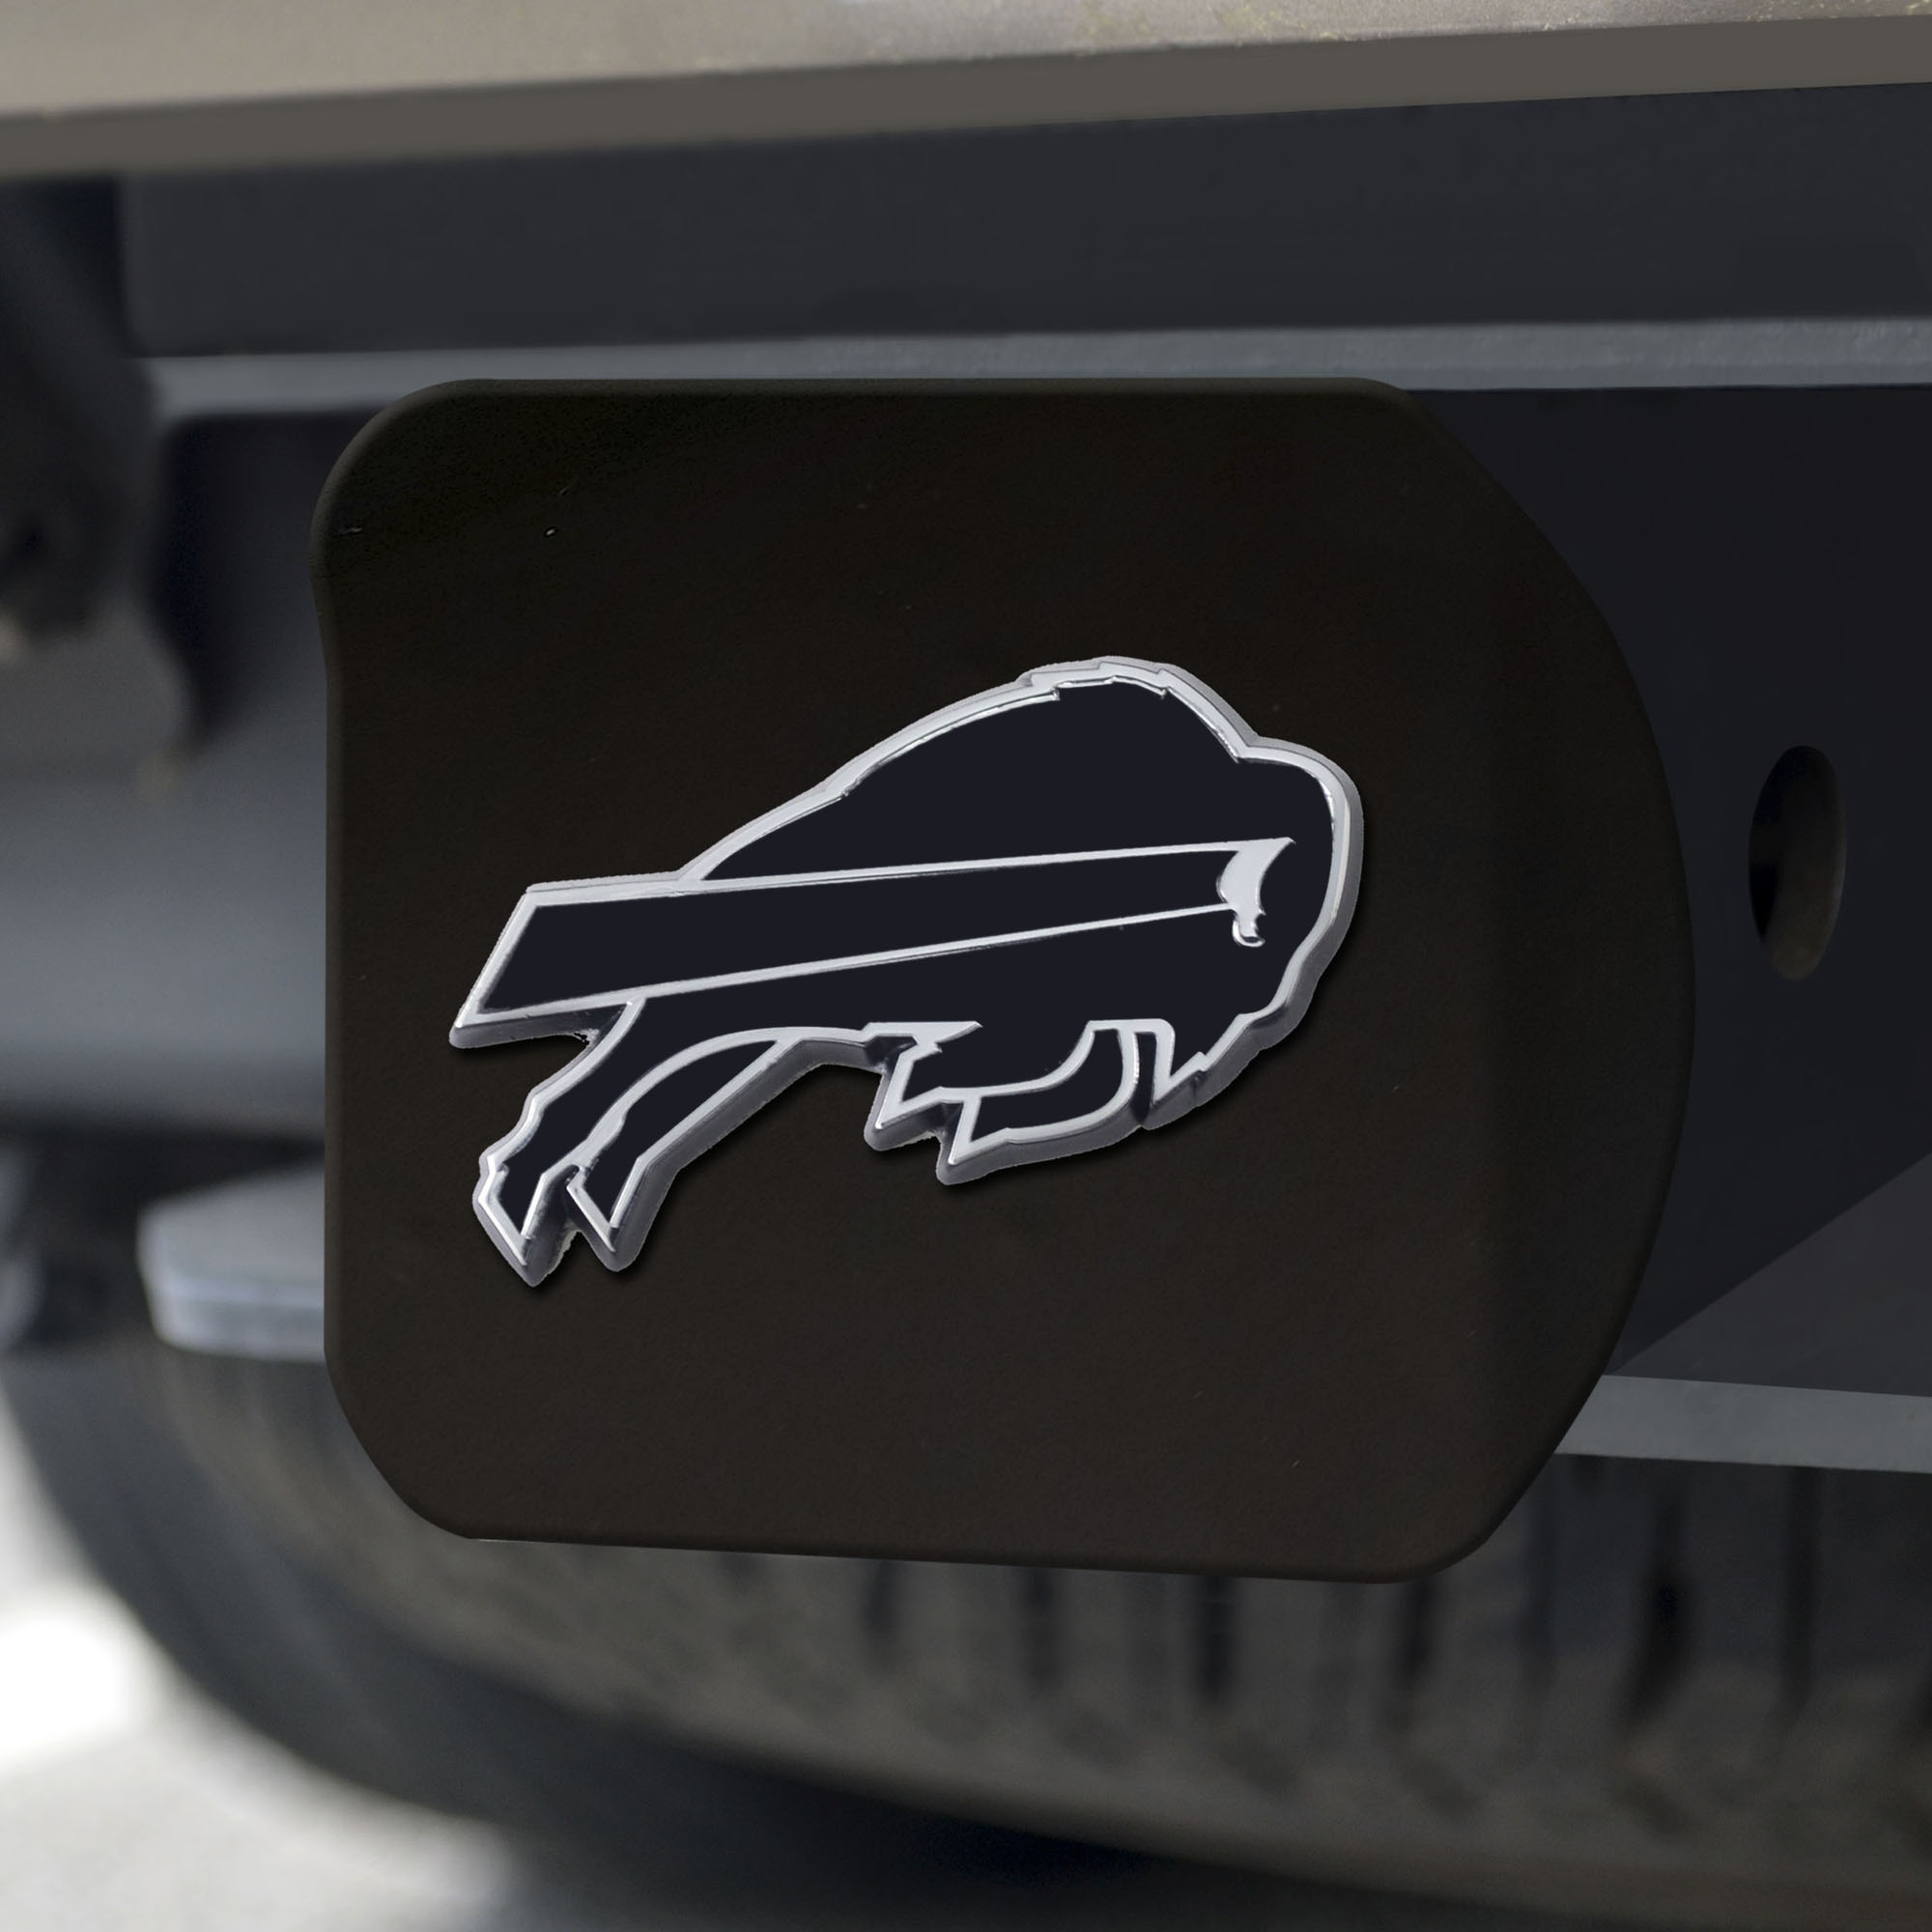 2 Square Type III Hitch Cover Chrome NFL Buffalo Bills Metal Hitch Cover